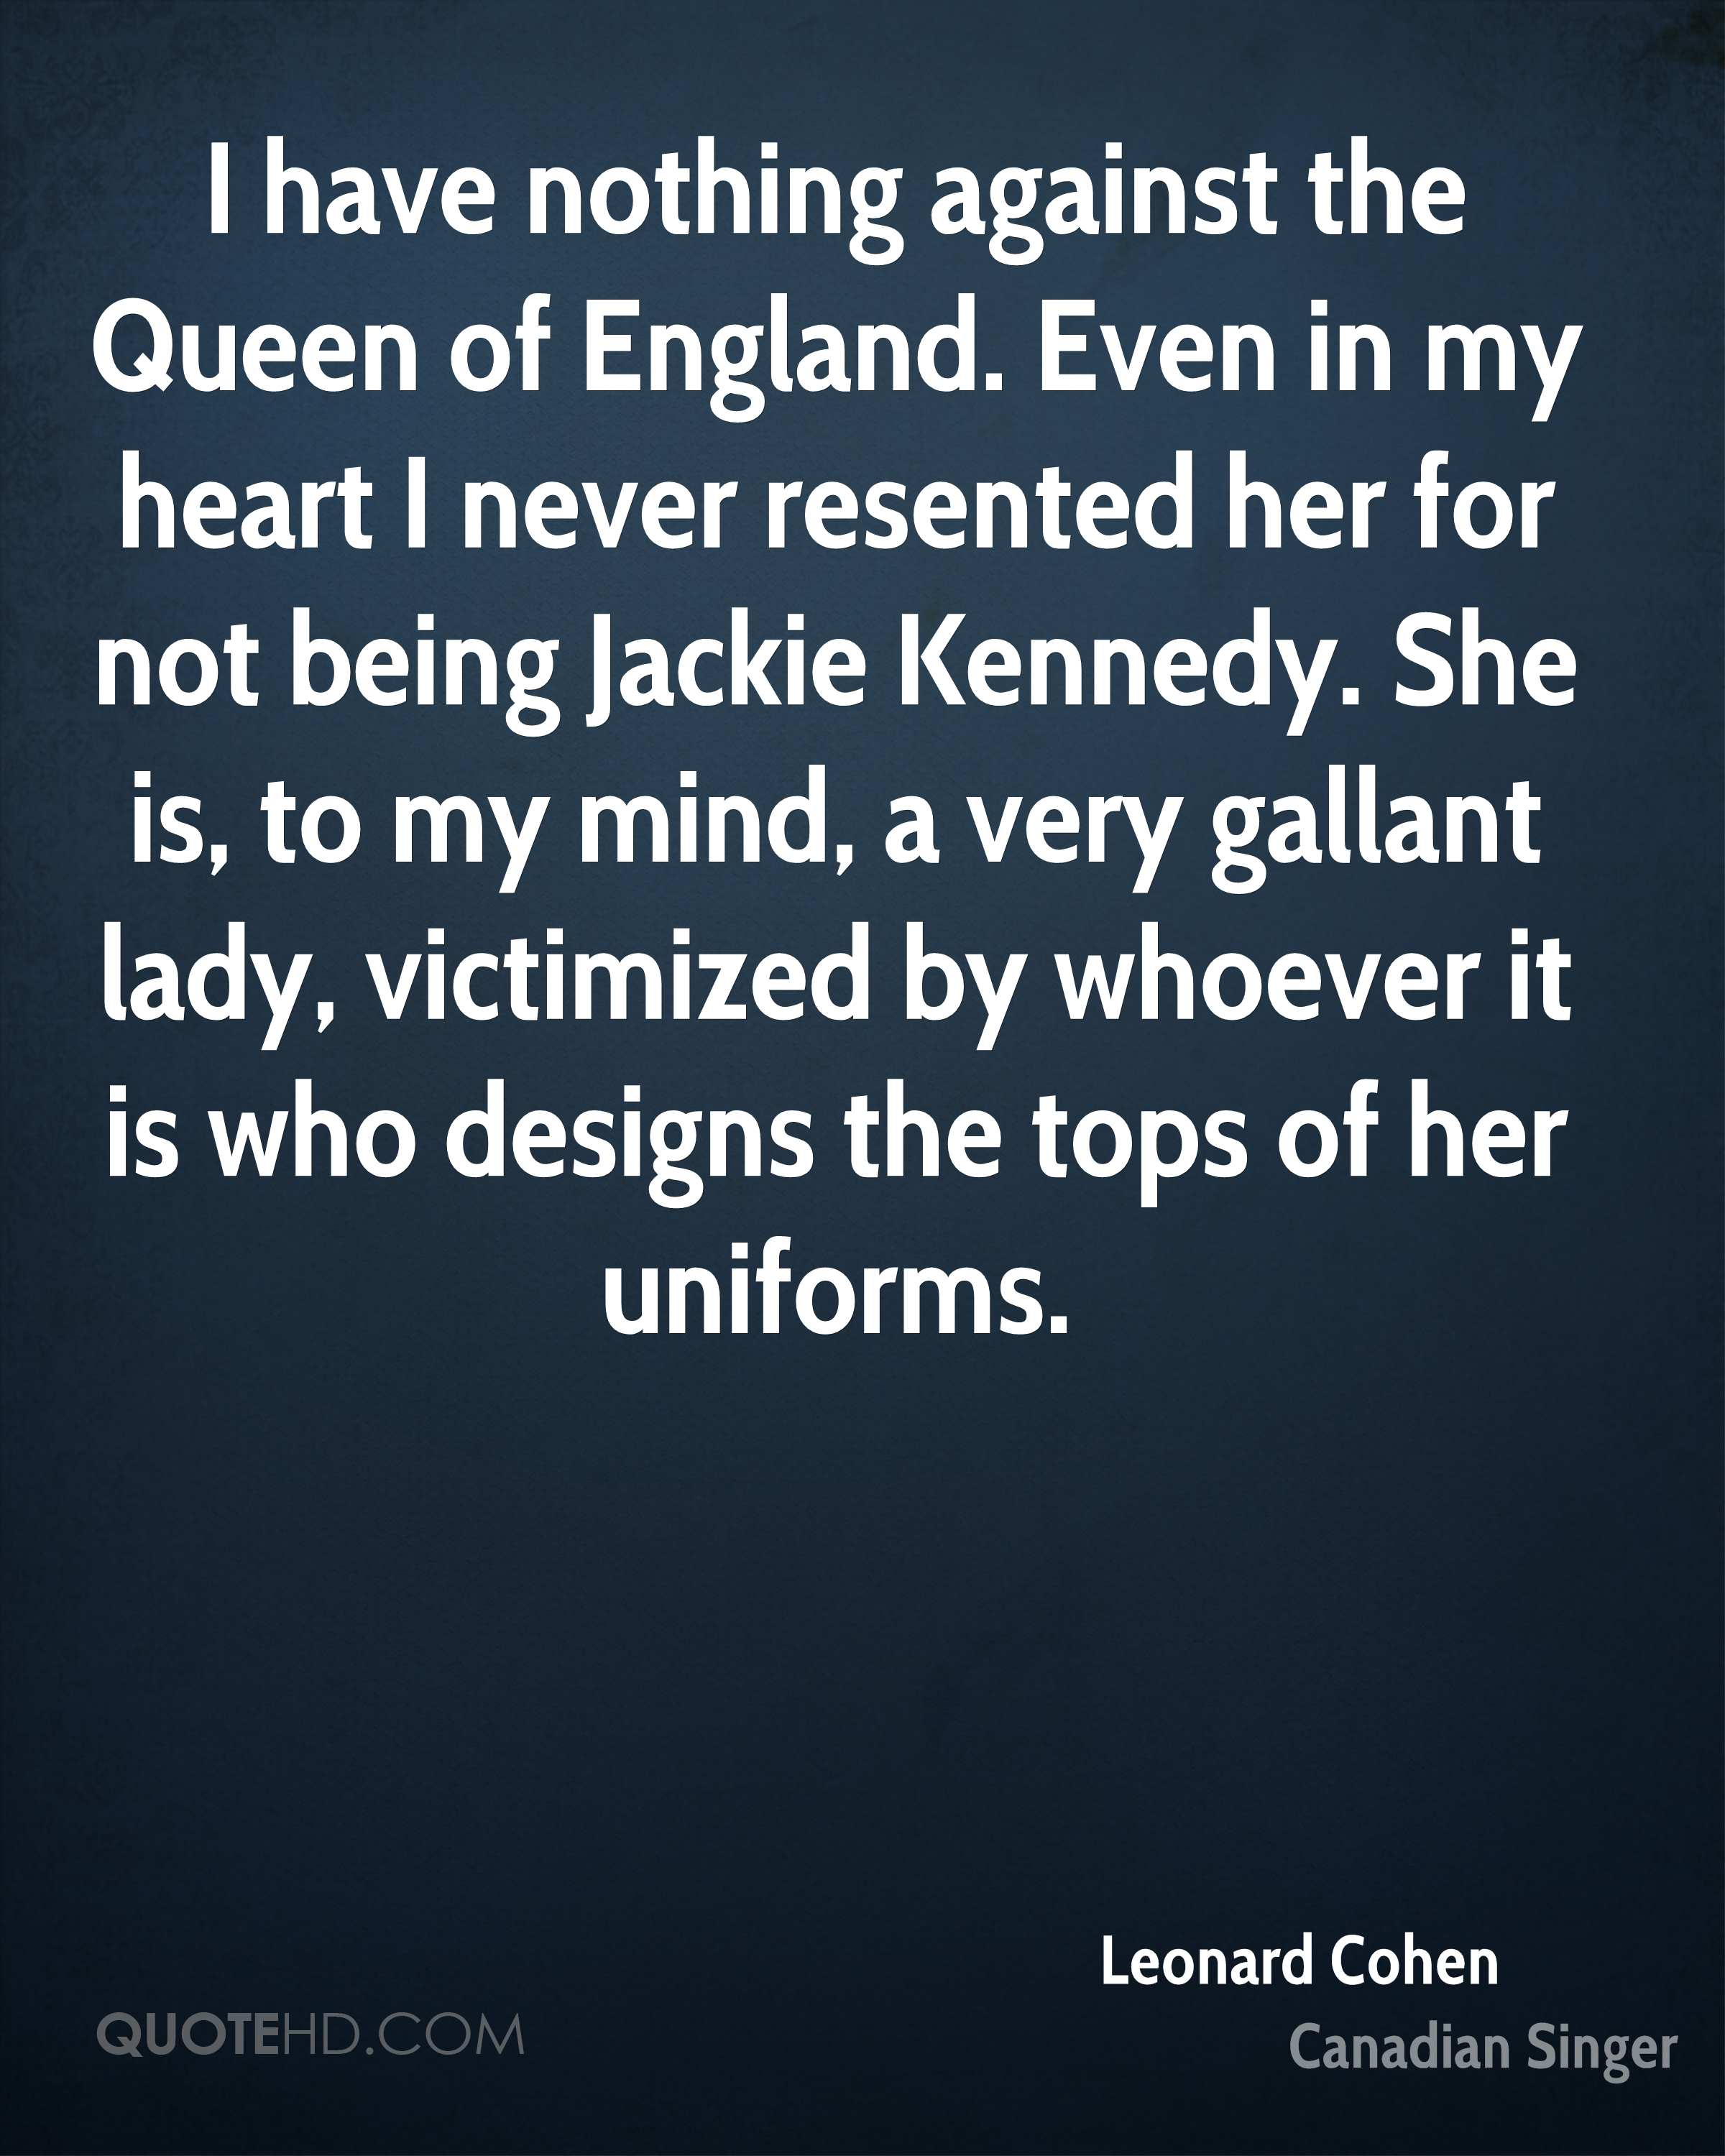 I have nothing against the Queen of England. Even in my heart I never resented her for not being Jackie Kennedy. She is, to my mind, a very gallant lady, victimized by whoever it is who designs the tops of her uniforms.